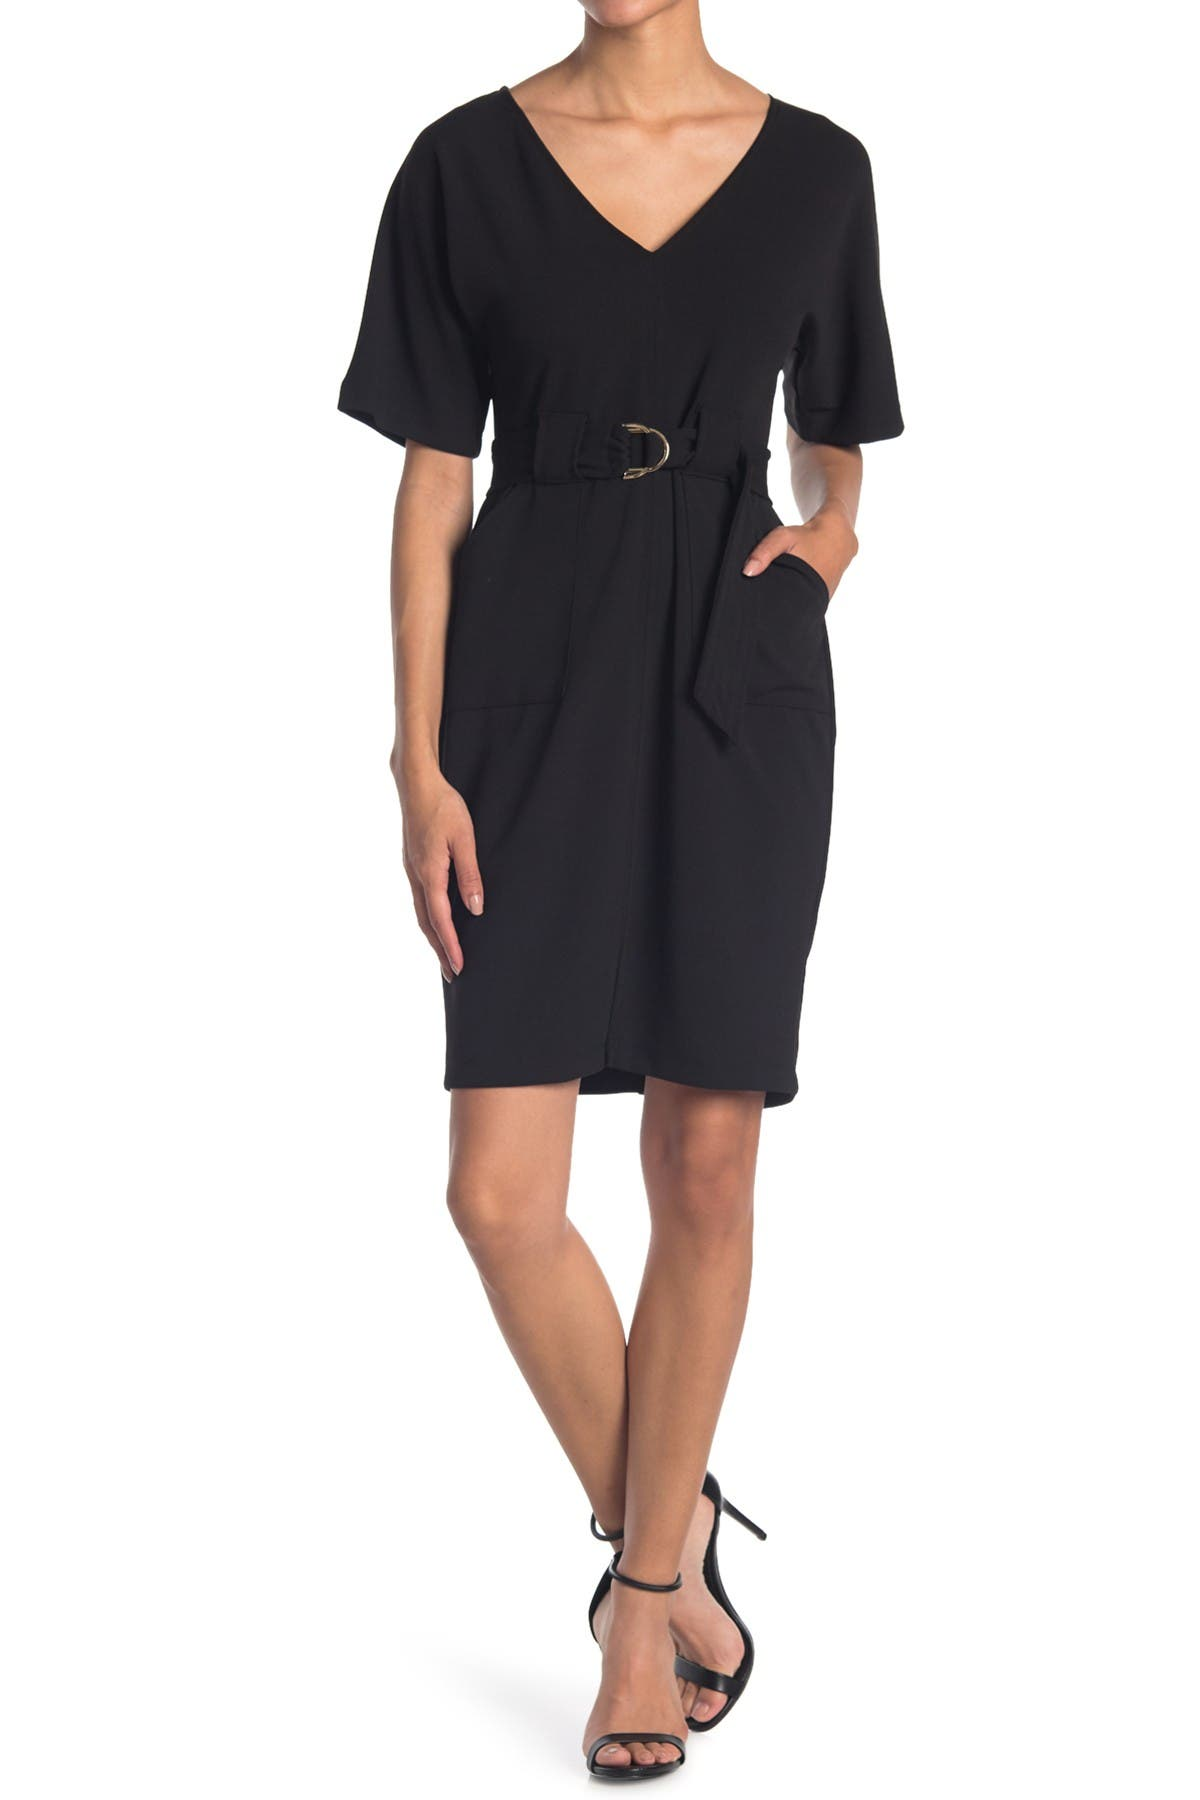 Image of TASH + SOPHIE V-Neck Belted Sheath Dress